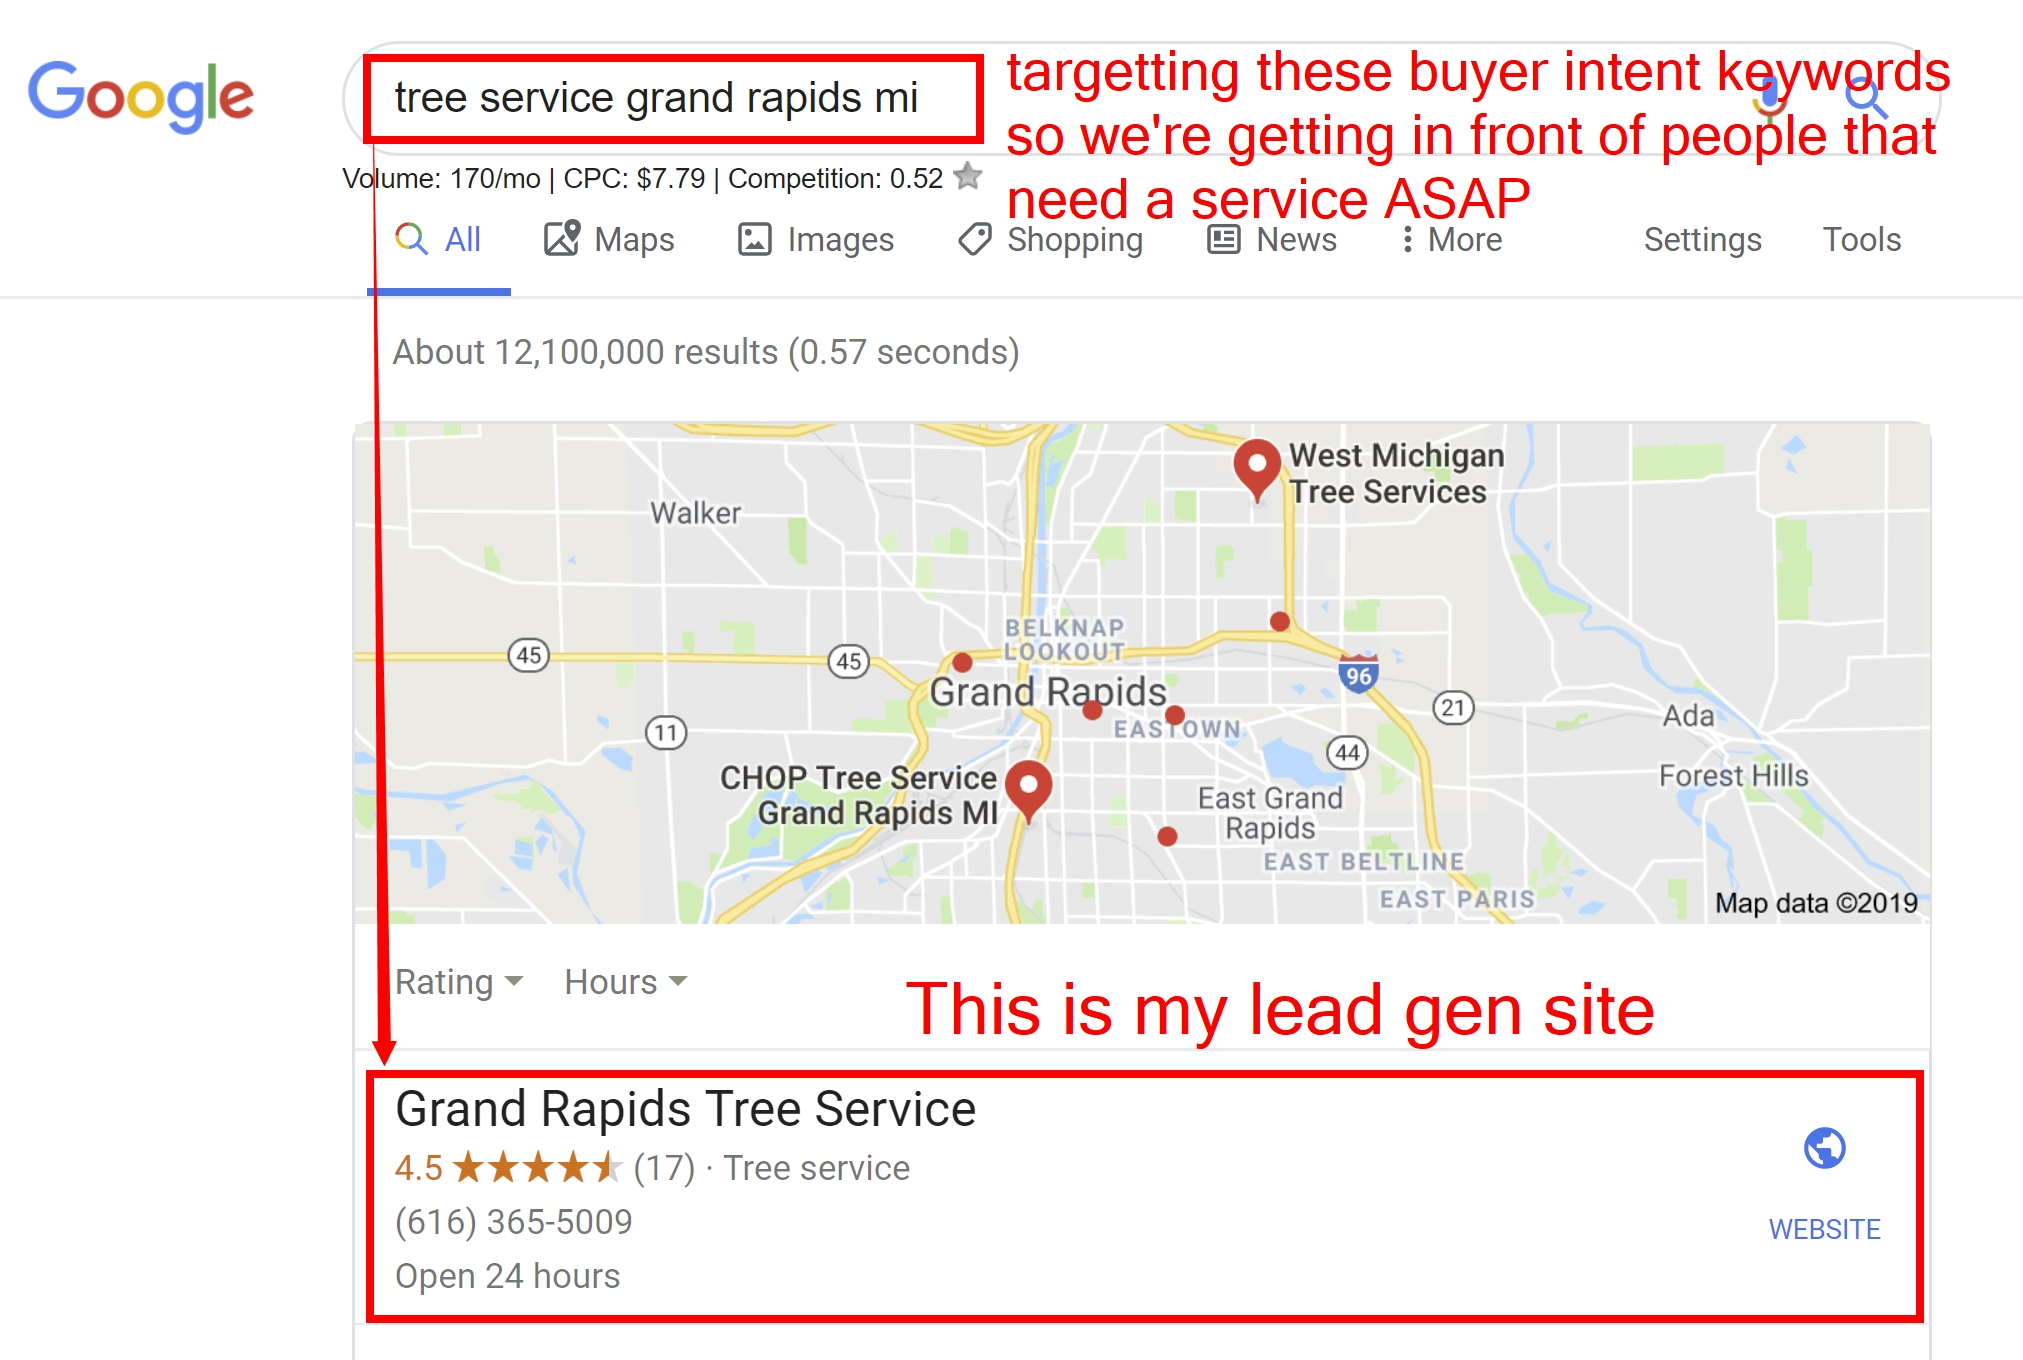 I have many lead generation sites that rank #1 on Google